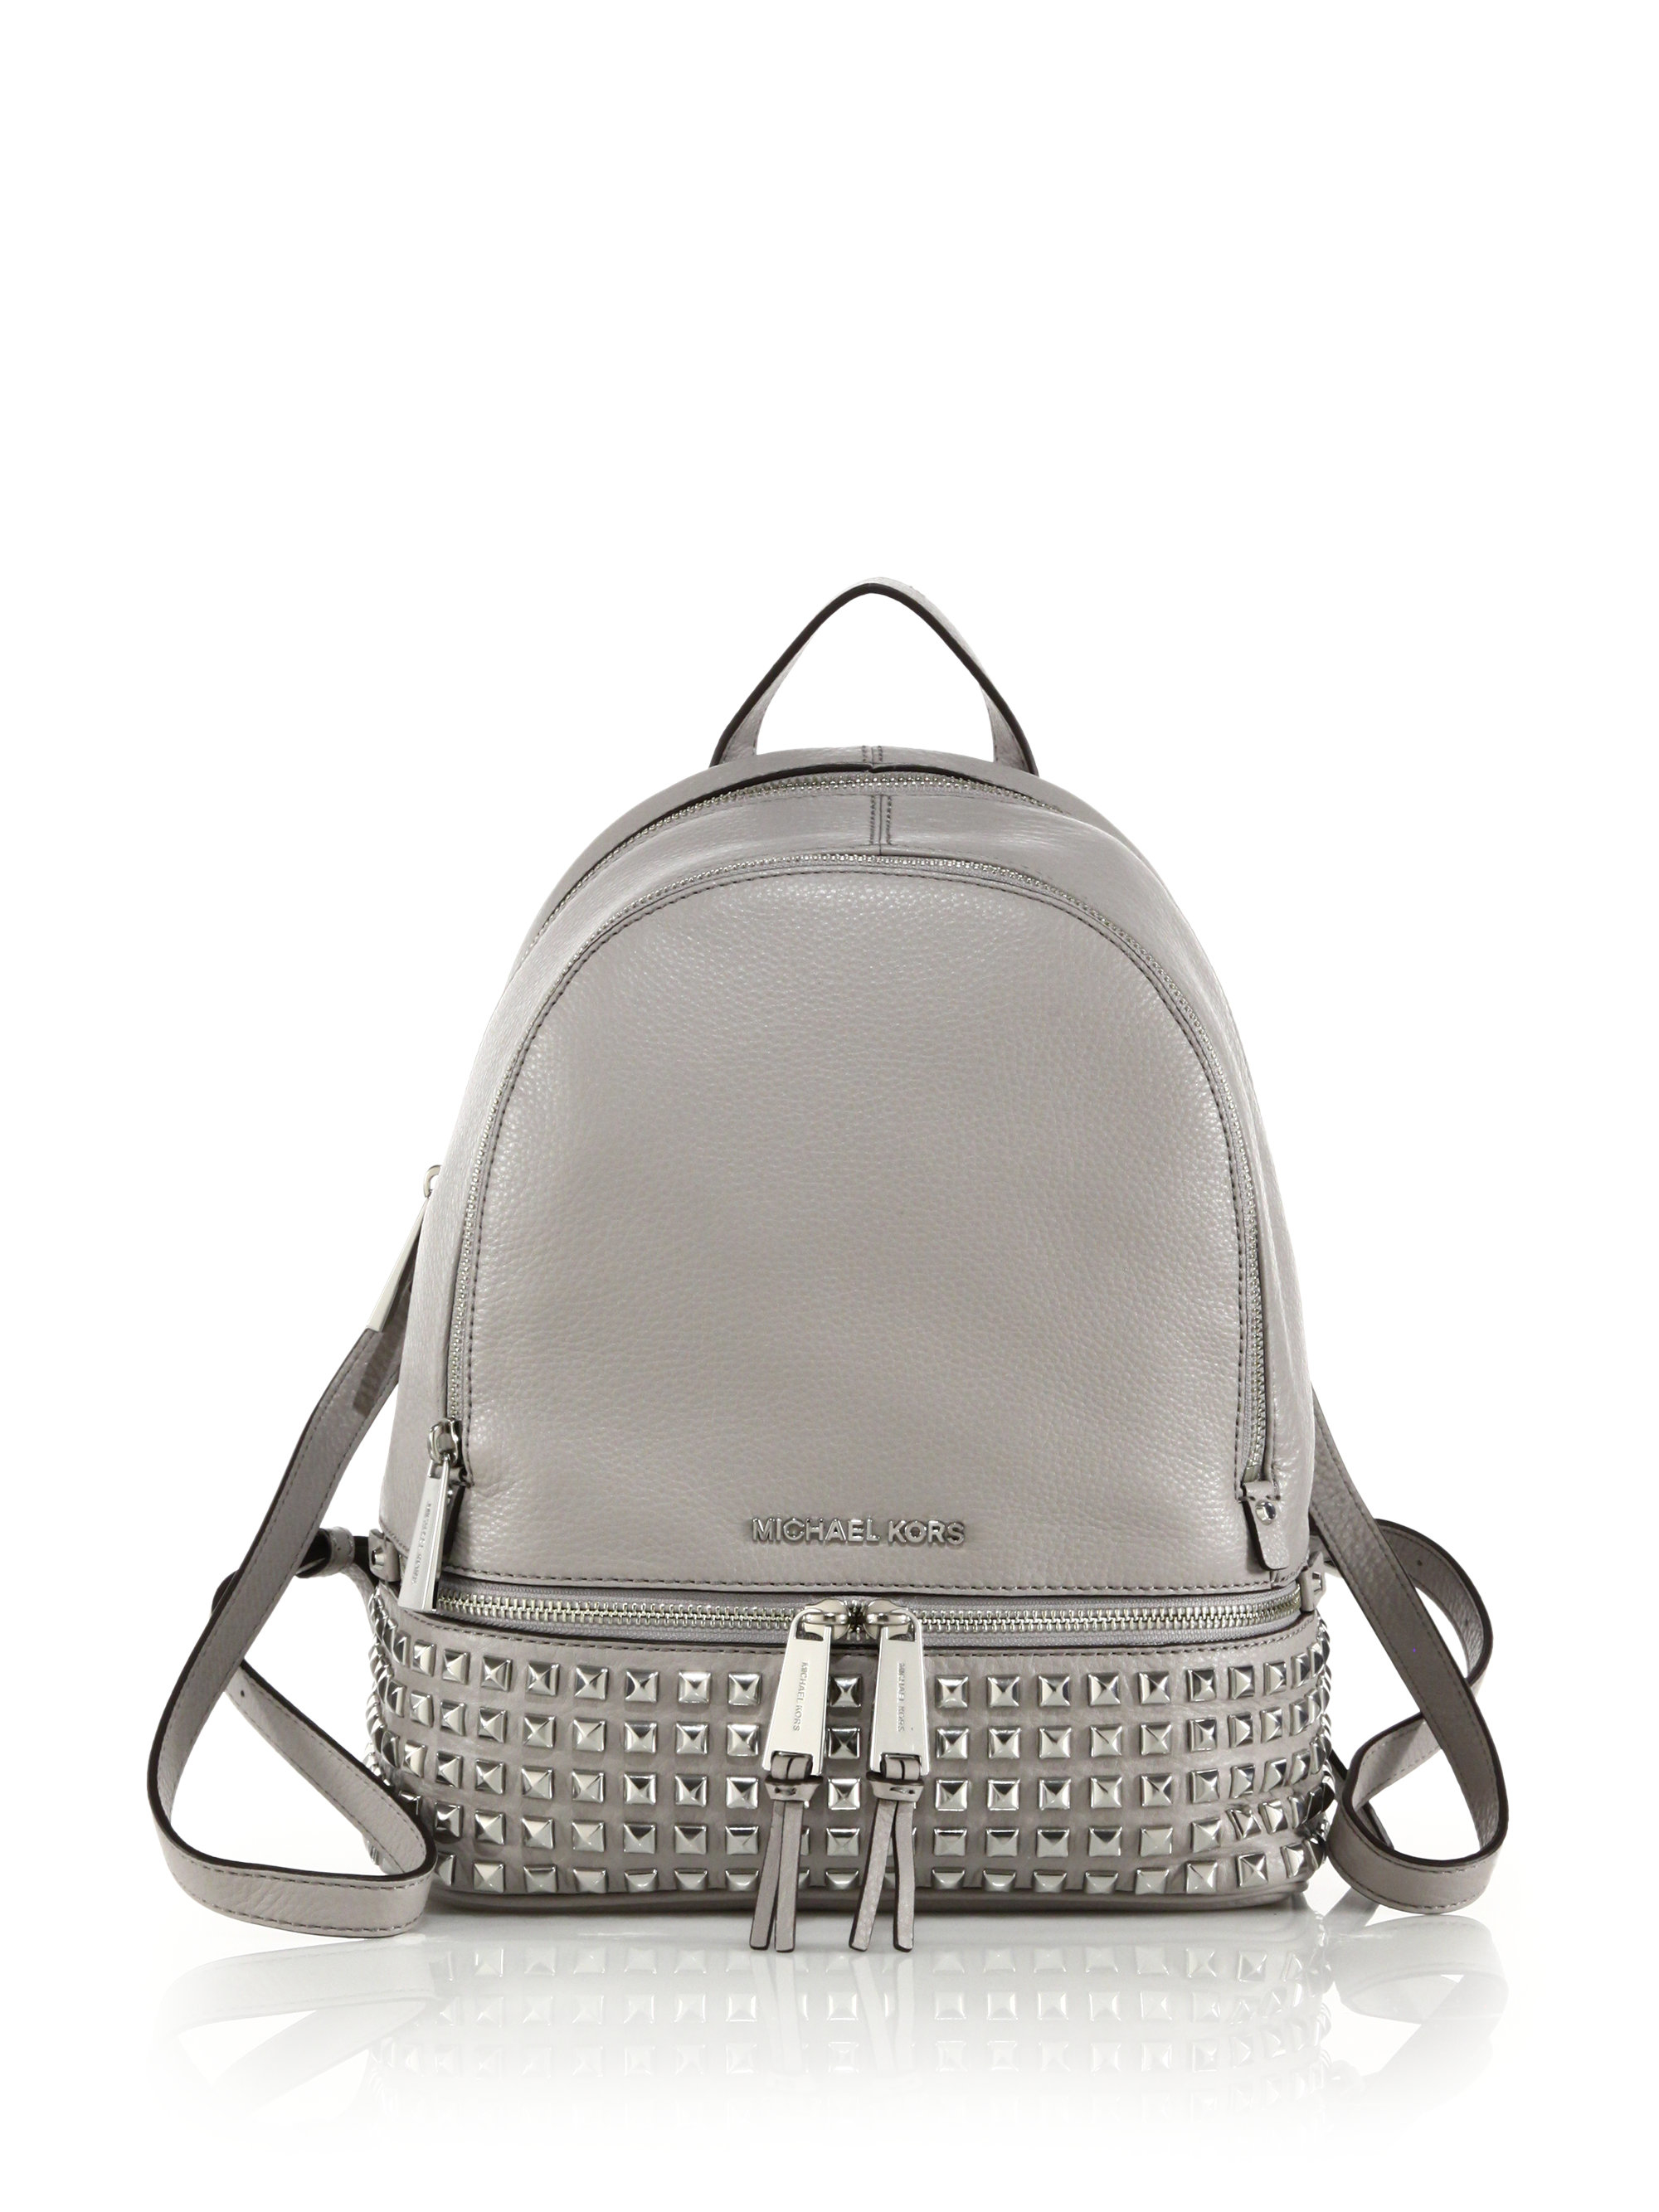 michael kors backpack black and silver mkdiscount. Black Bedroom Furniture Sets. Home Design Ideas